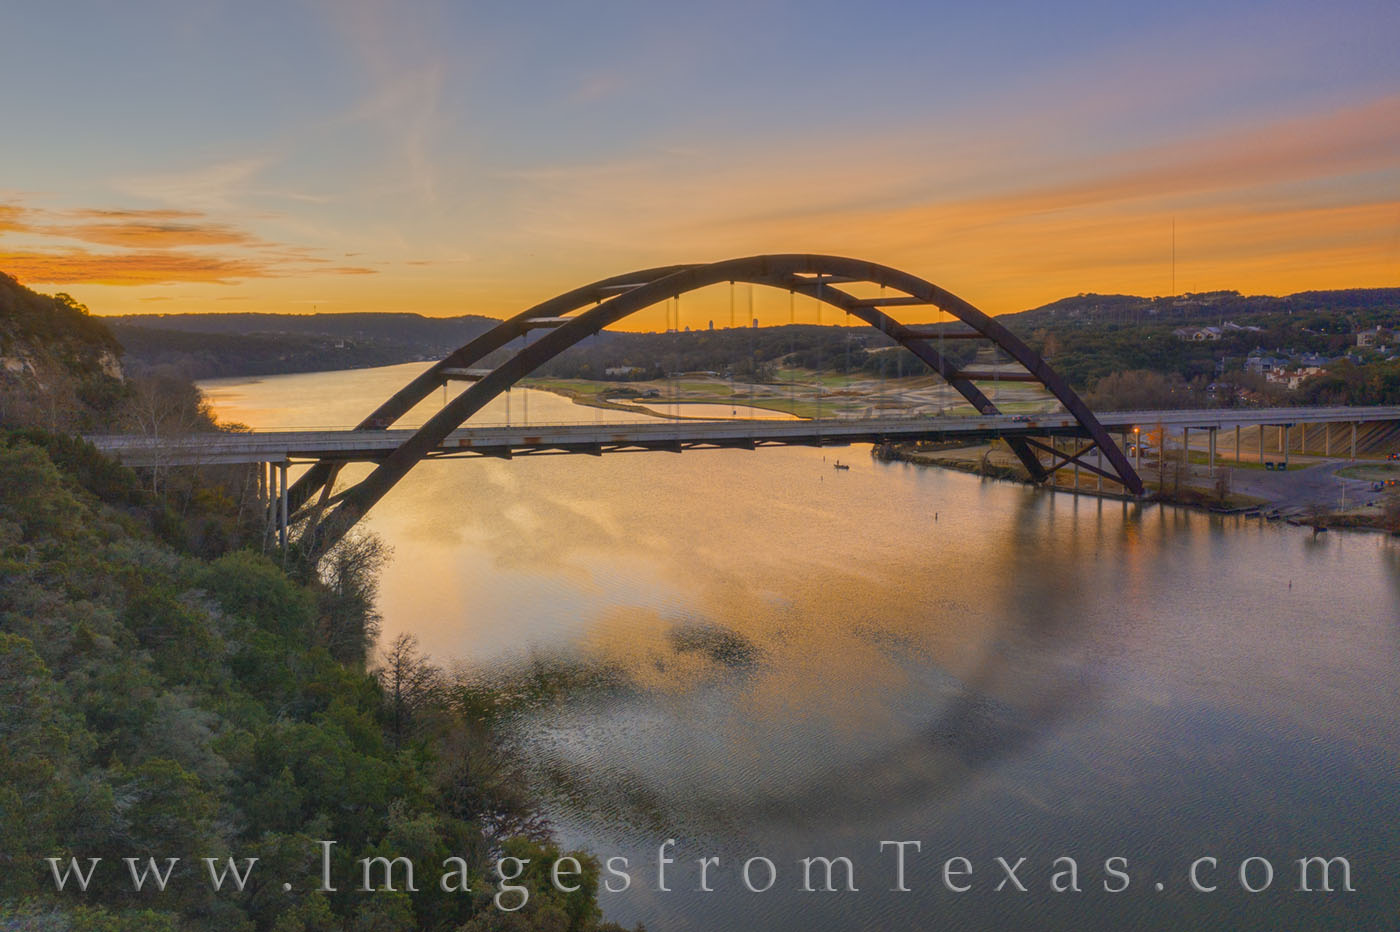 Pennybacker bridge, 360 bridge, austin bridge, austin icon, austin skyline, downtown, colorado river, sunrise, morning, december, winter, cold, photo